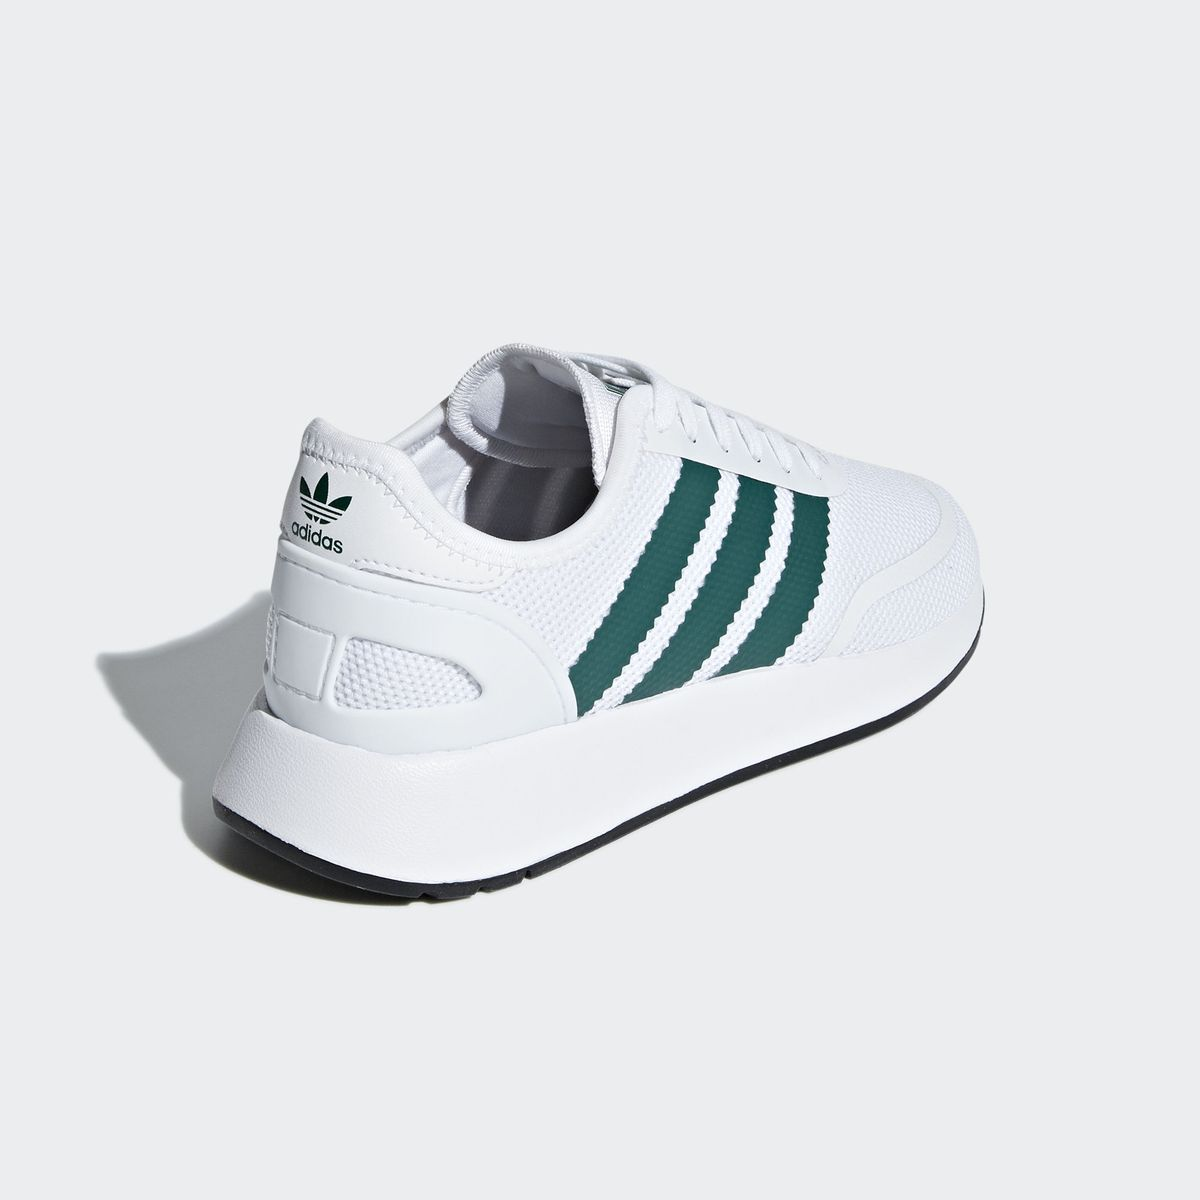 adidas chaussure fille 35